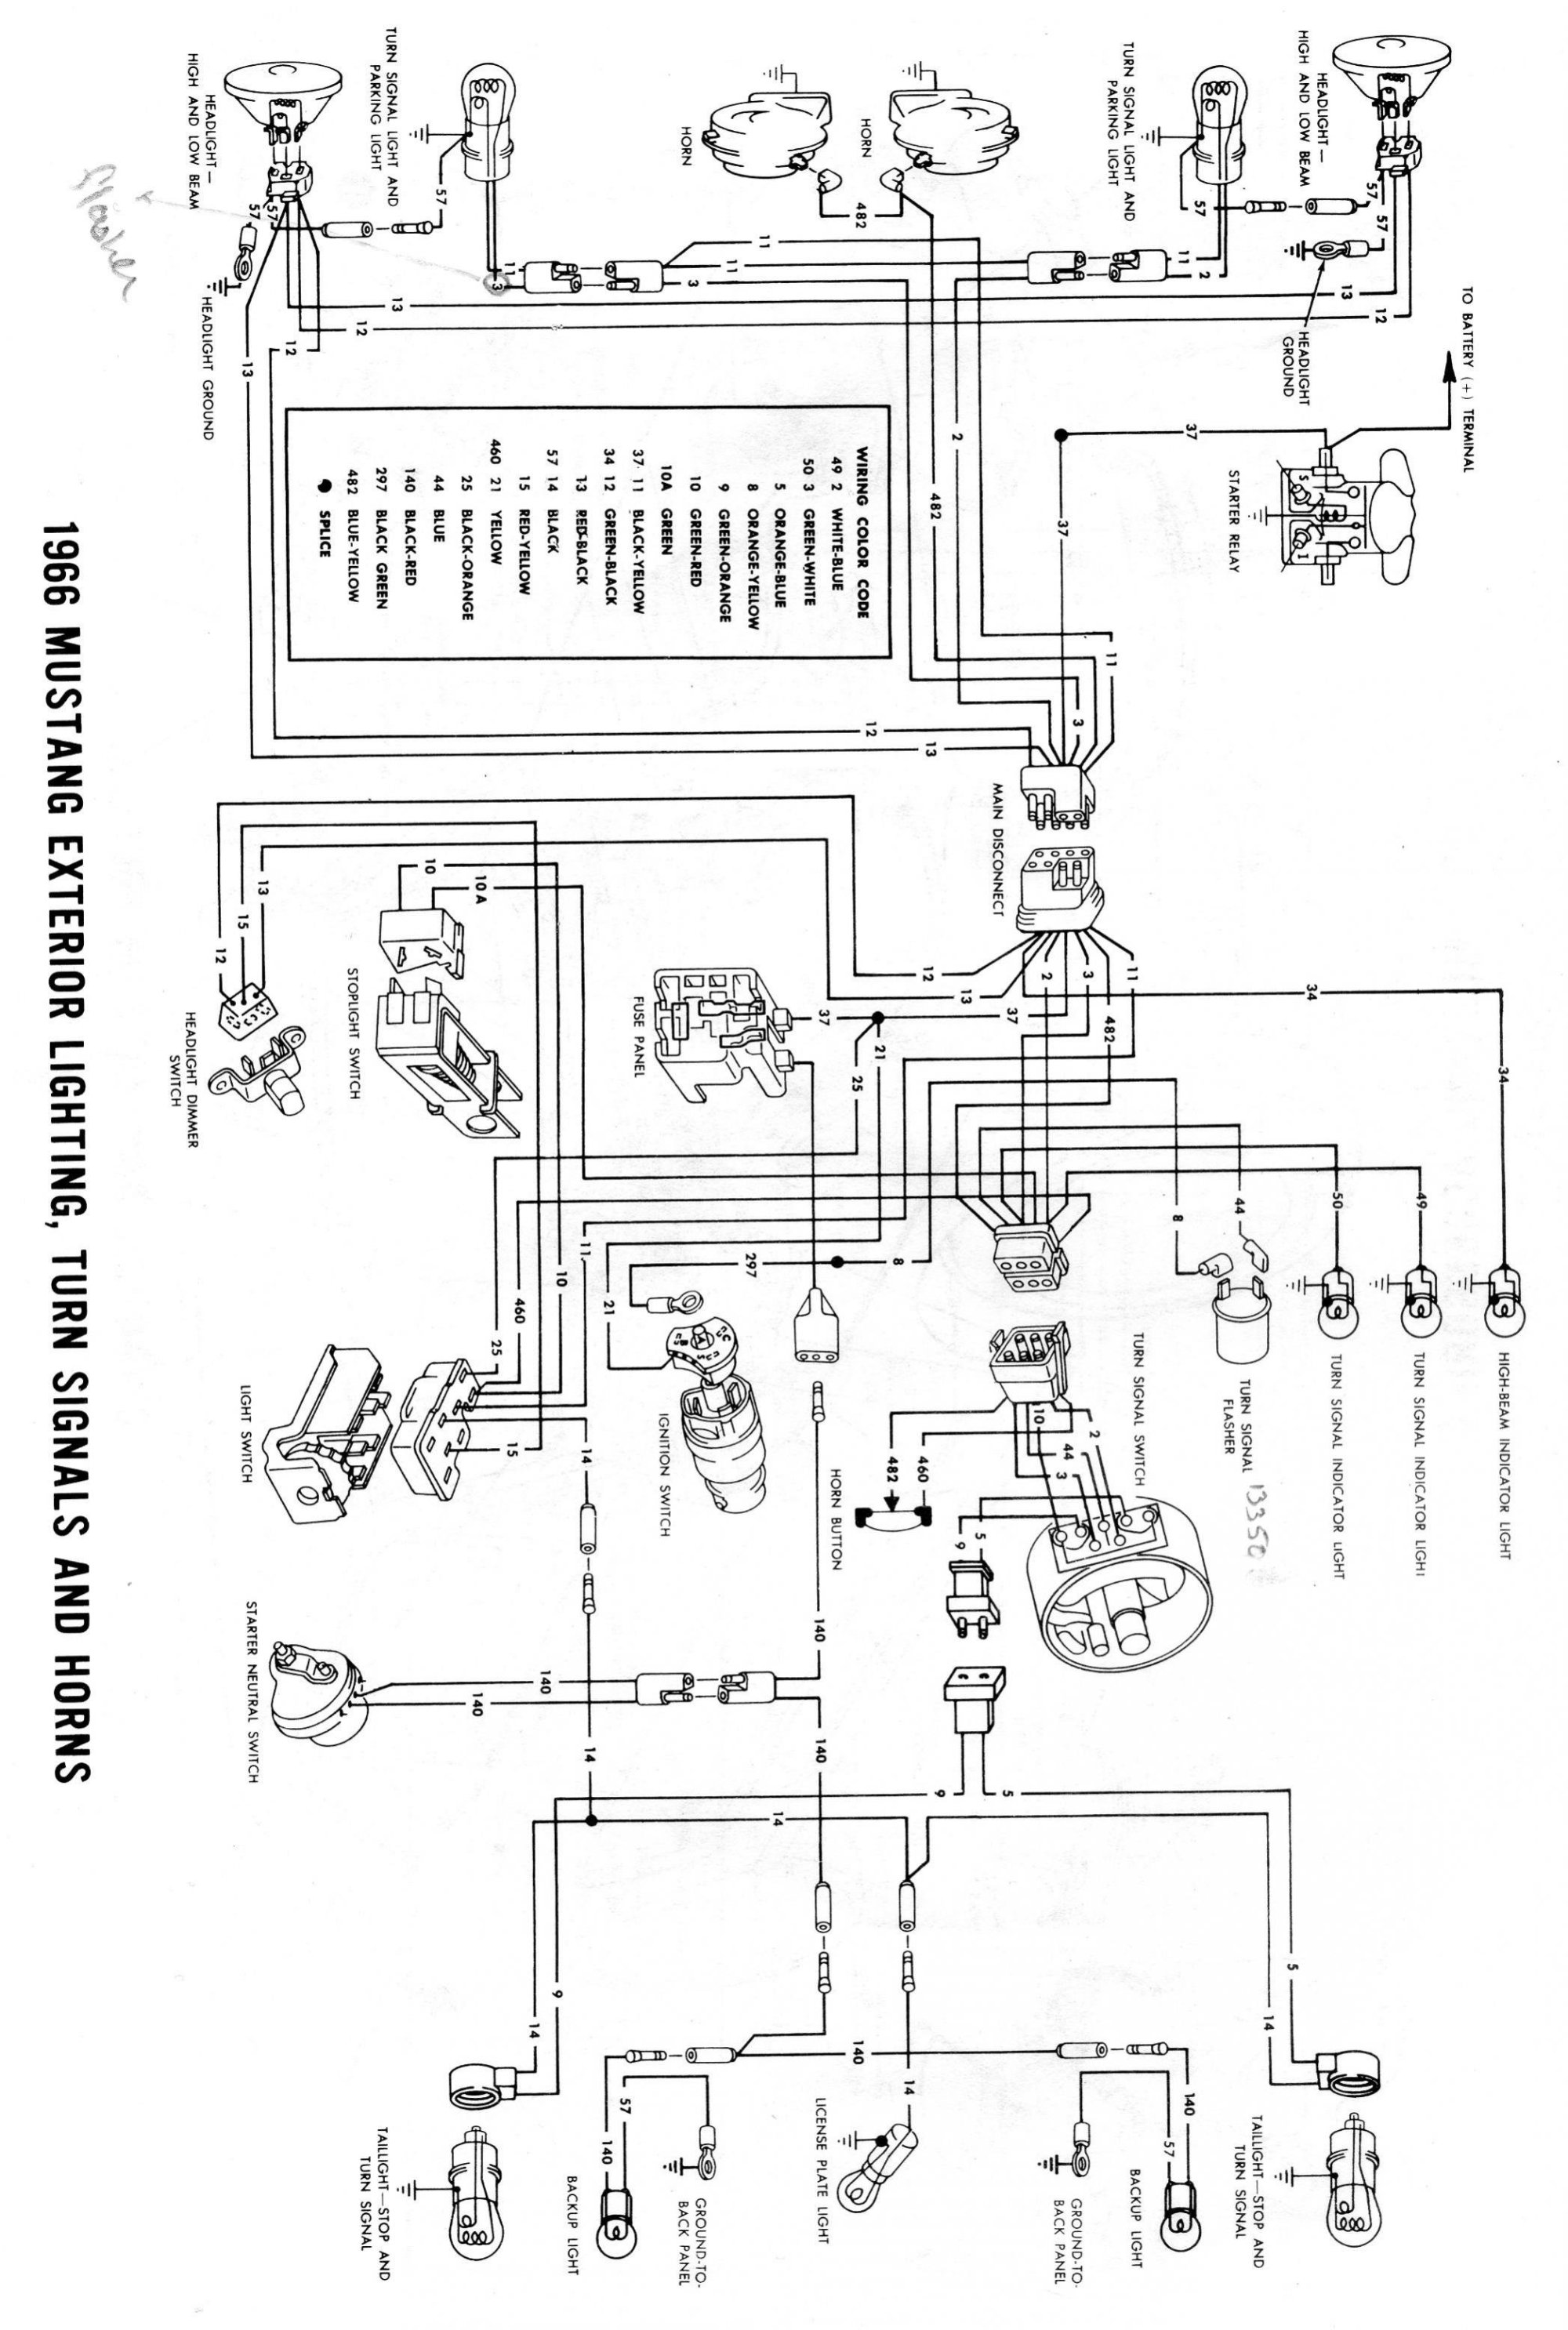 hight resolution of 1966 mustang wiring diagram free wiring diagram expert 1965 mustang wiring schematic free